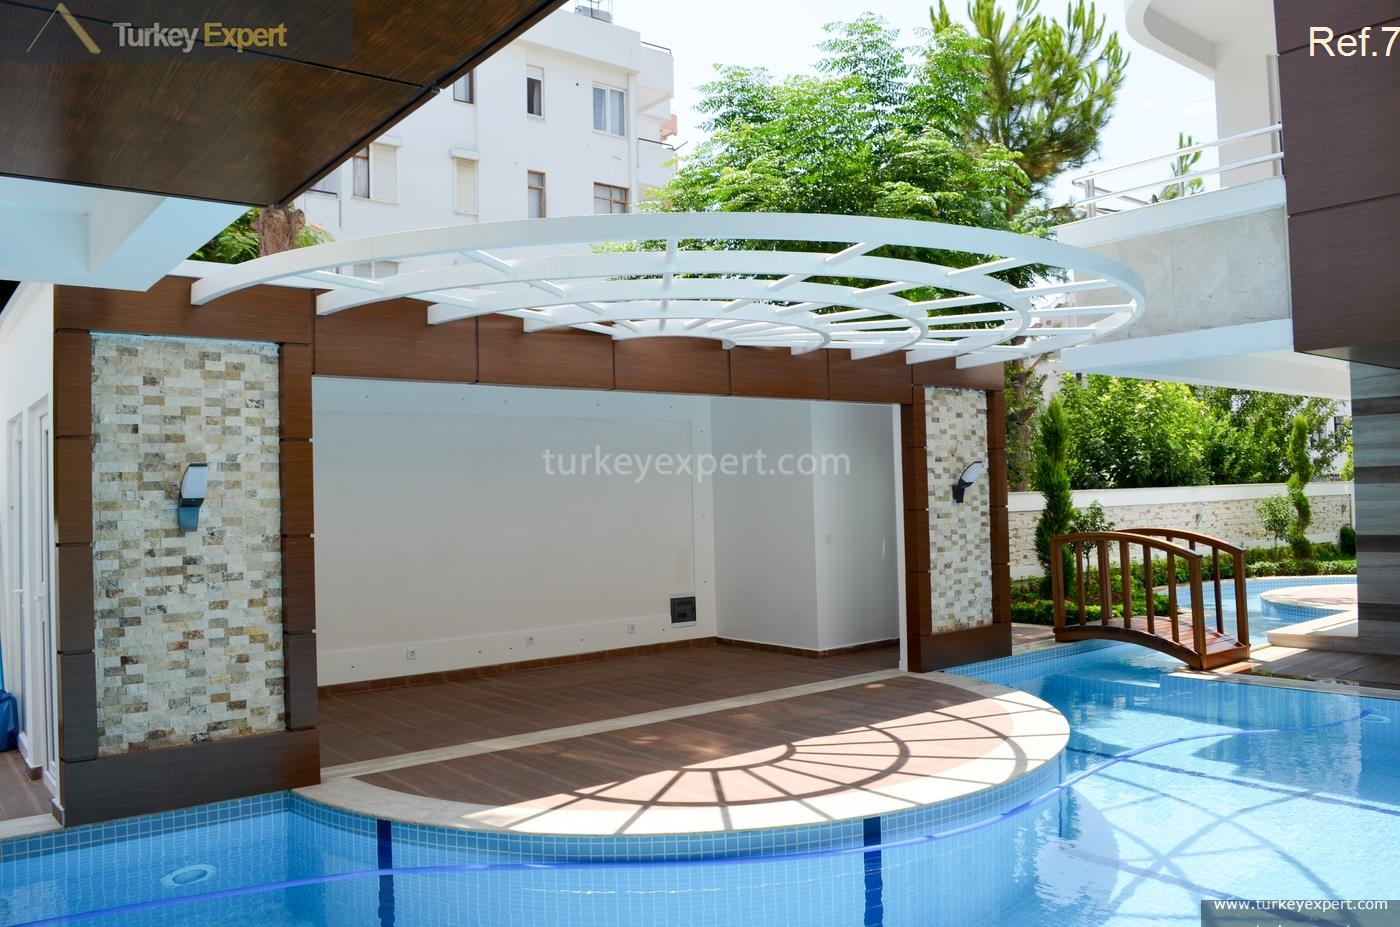 apartments for sale in antalya12.